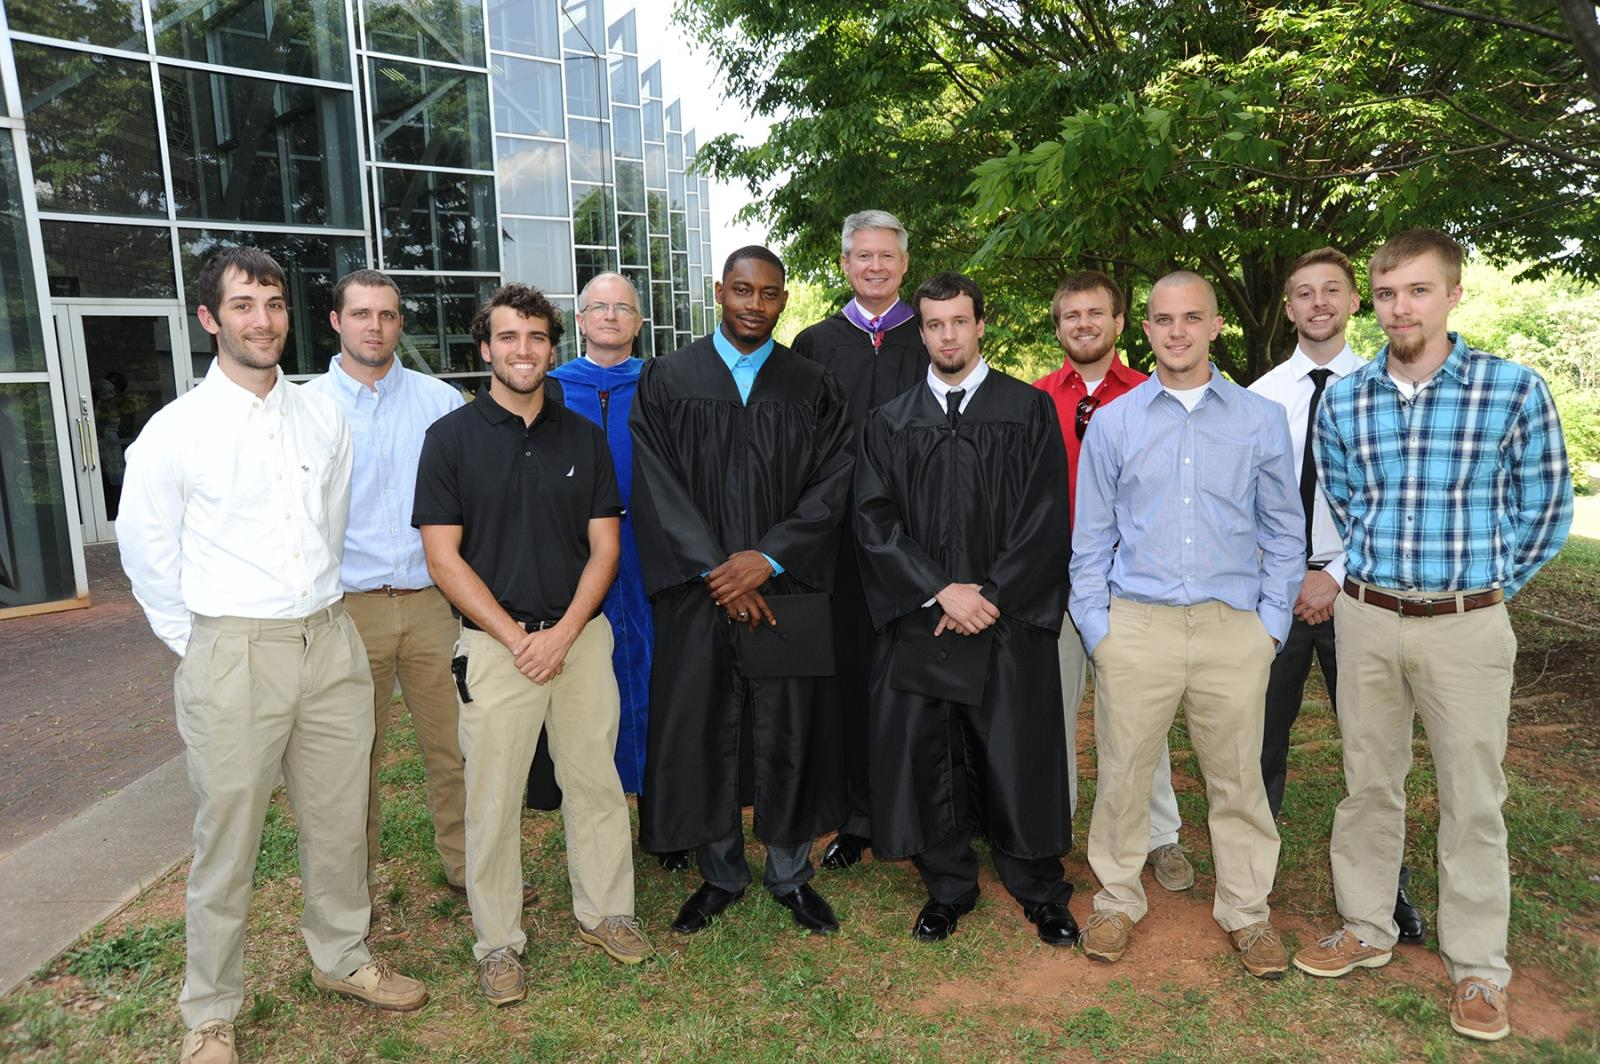 tri_County_Technical_College_Graduation_1.JPG